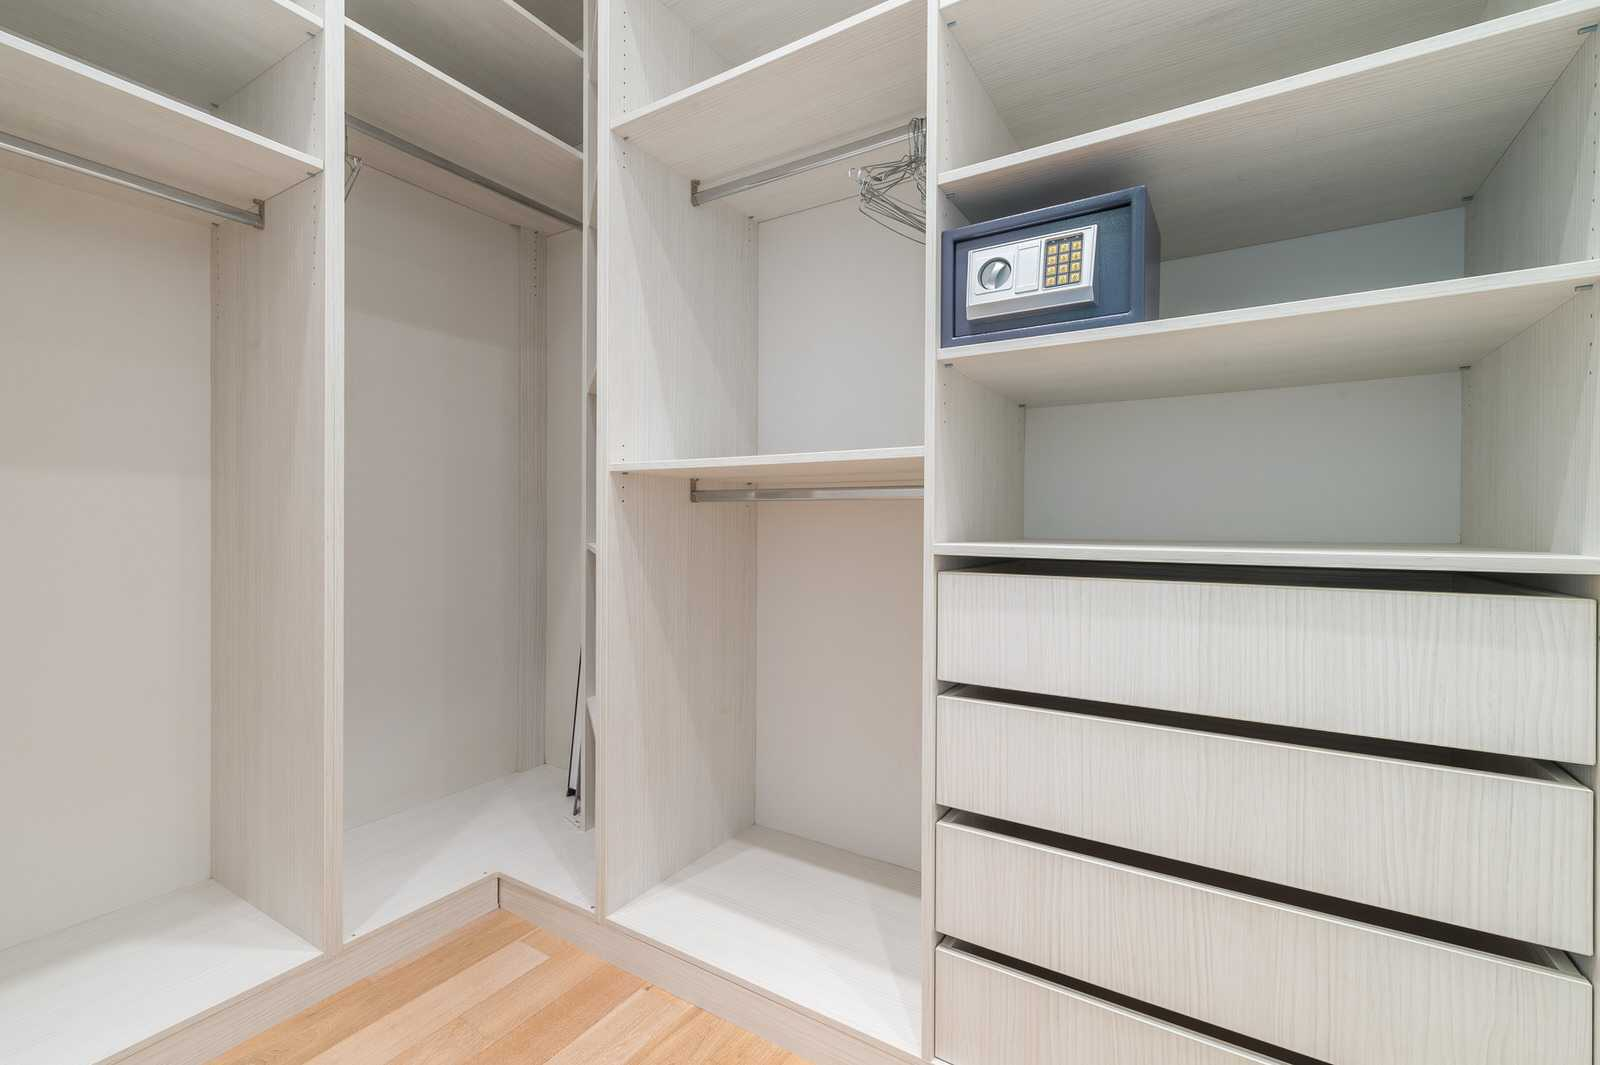 You can walk into a large walk in closet through the bedroom.